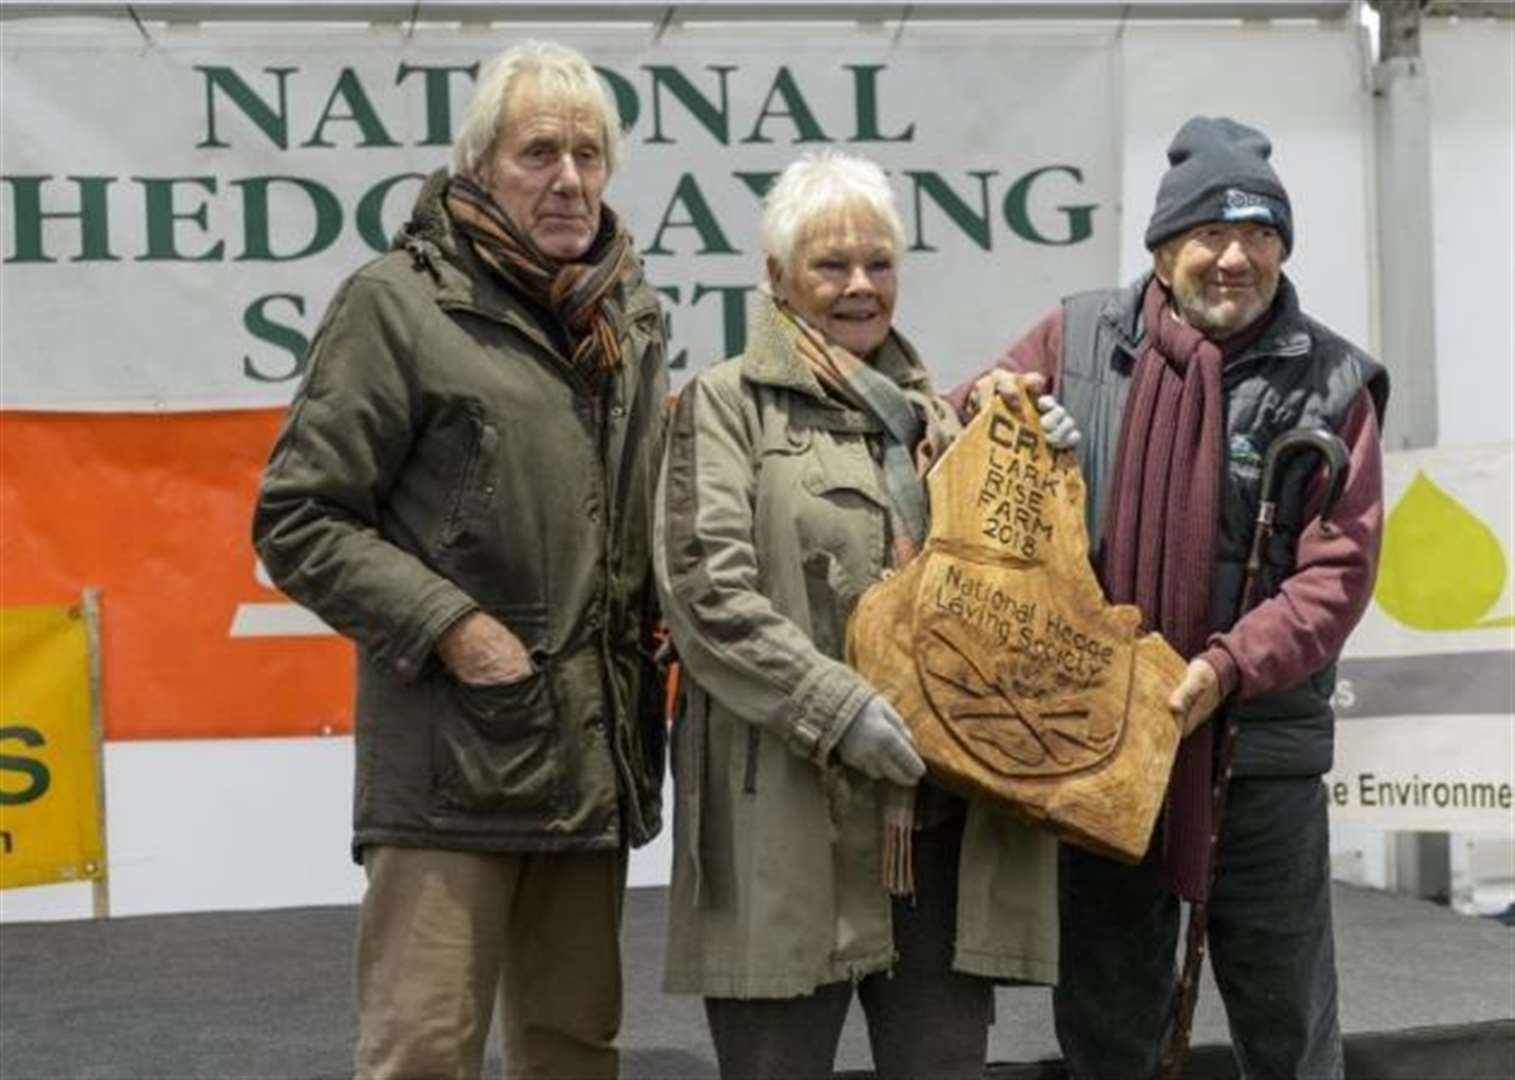 Dame Judi Dench involved in awards presentation at Cambridgeshire event